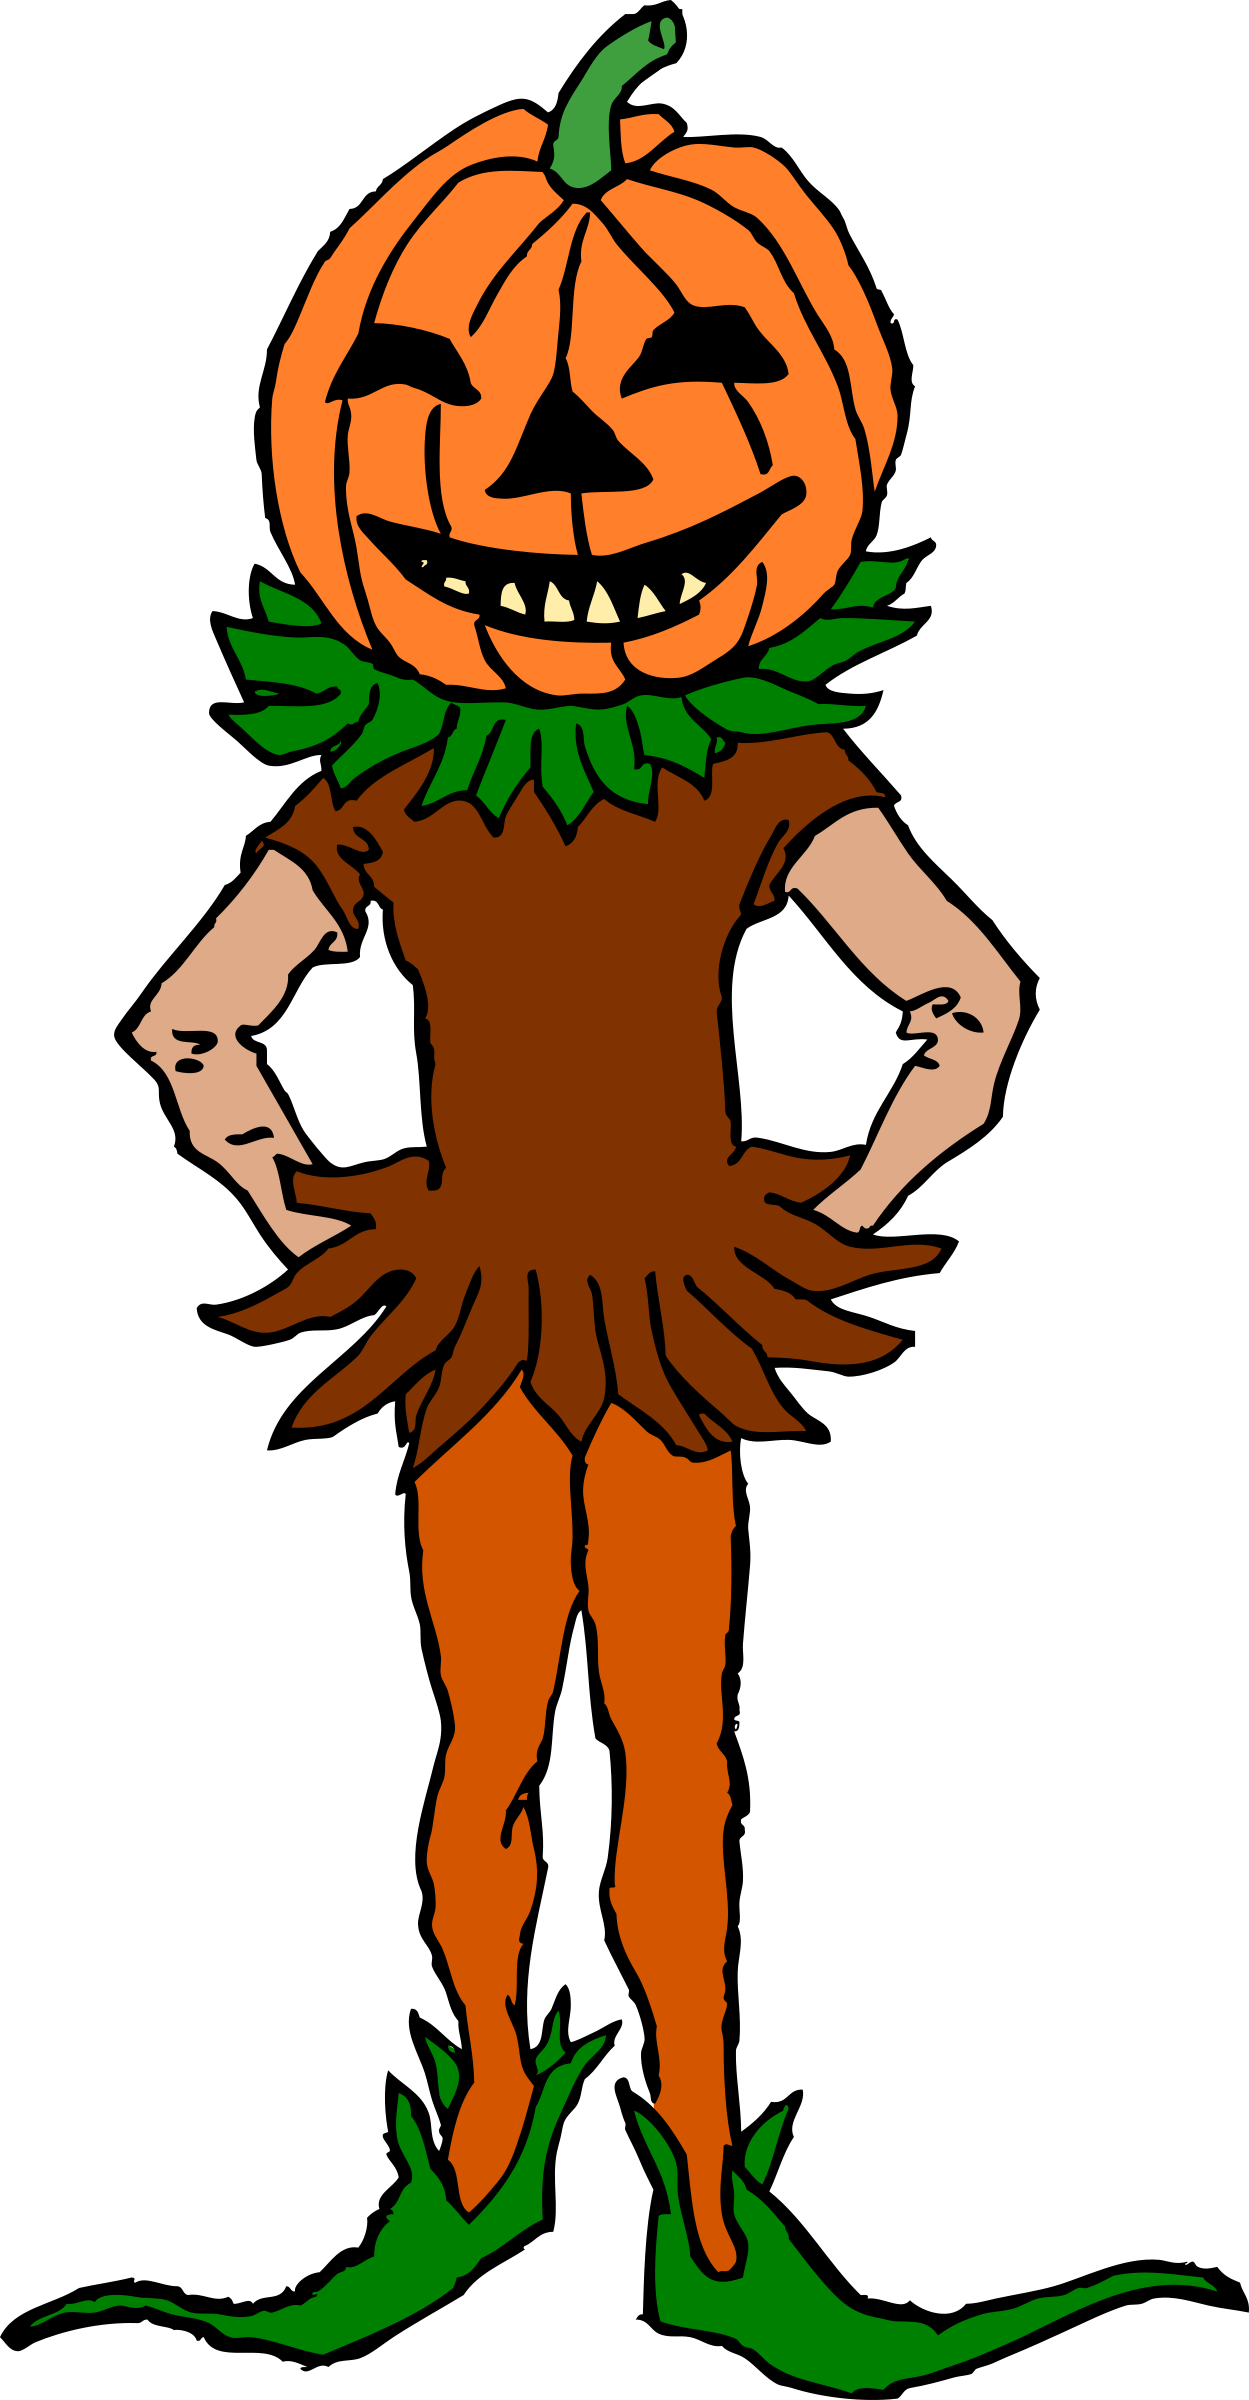 Pumpkin color clipart graphic free download Clipart - Pumpkin Boy Color Version graphic free download